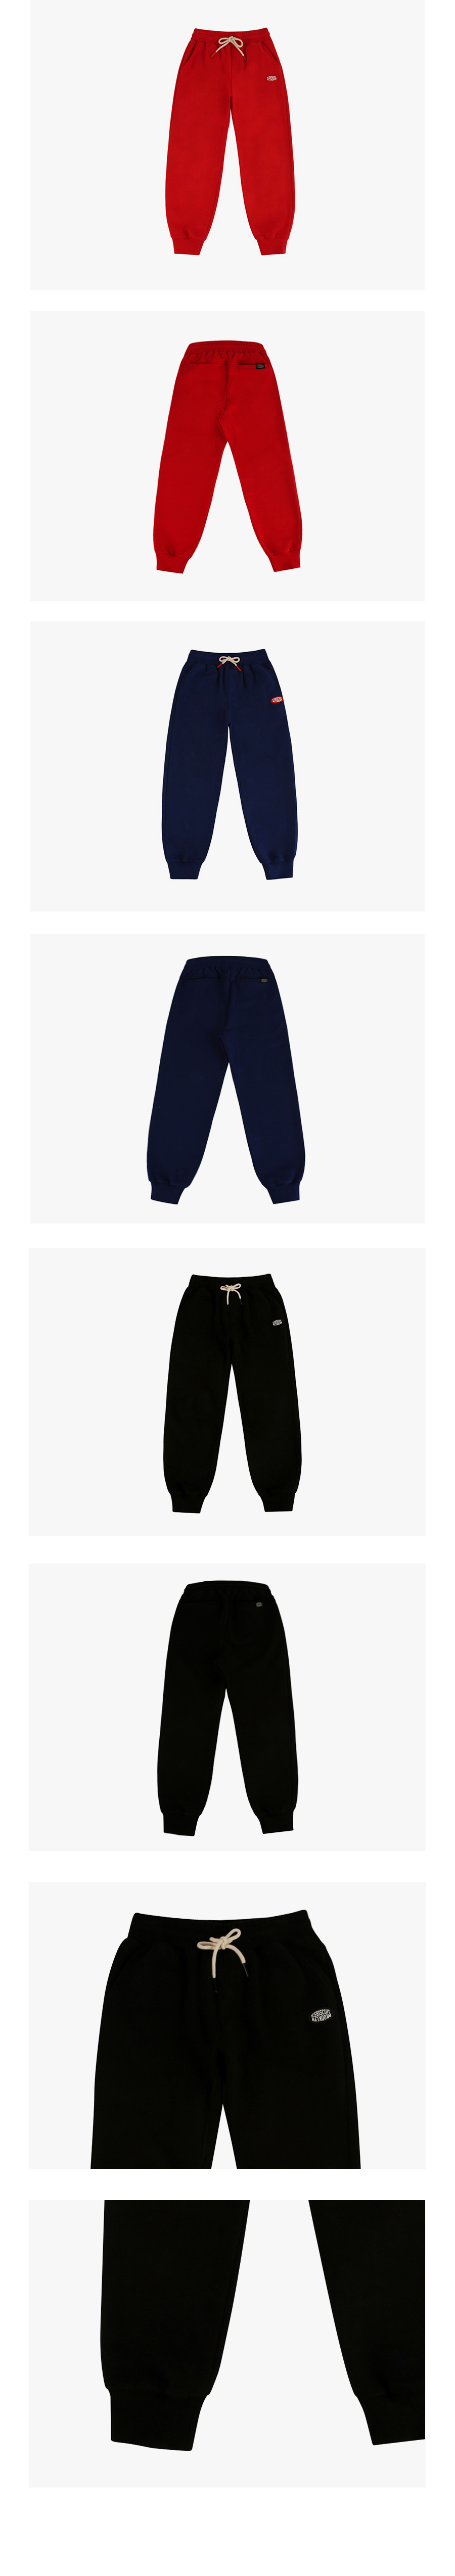 Icebiscuit classic logo sweat pants 상세 이미지